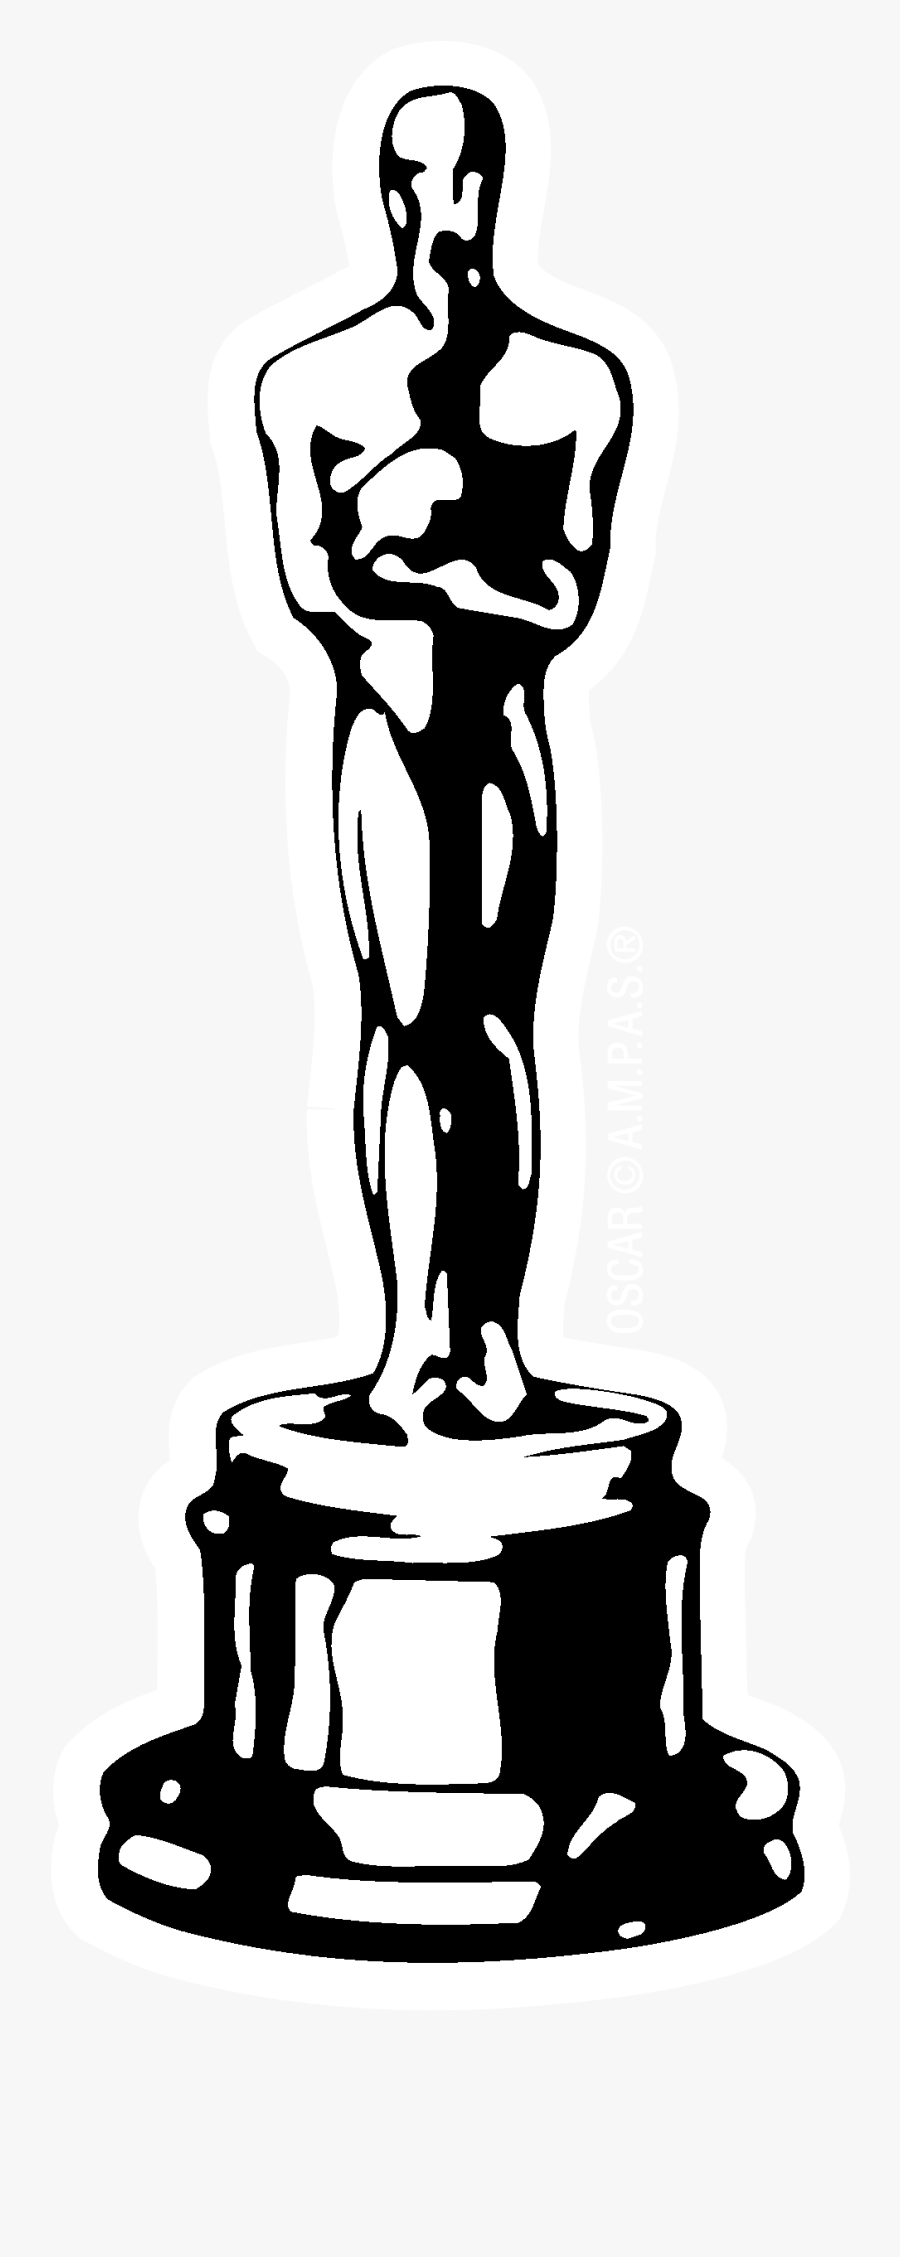 Academy Awards Png, The Oscars Png.